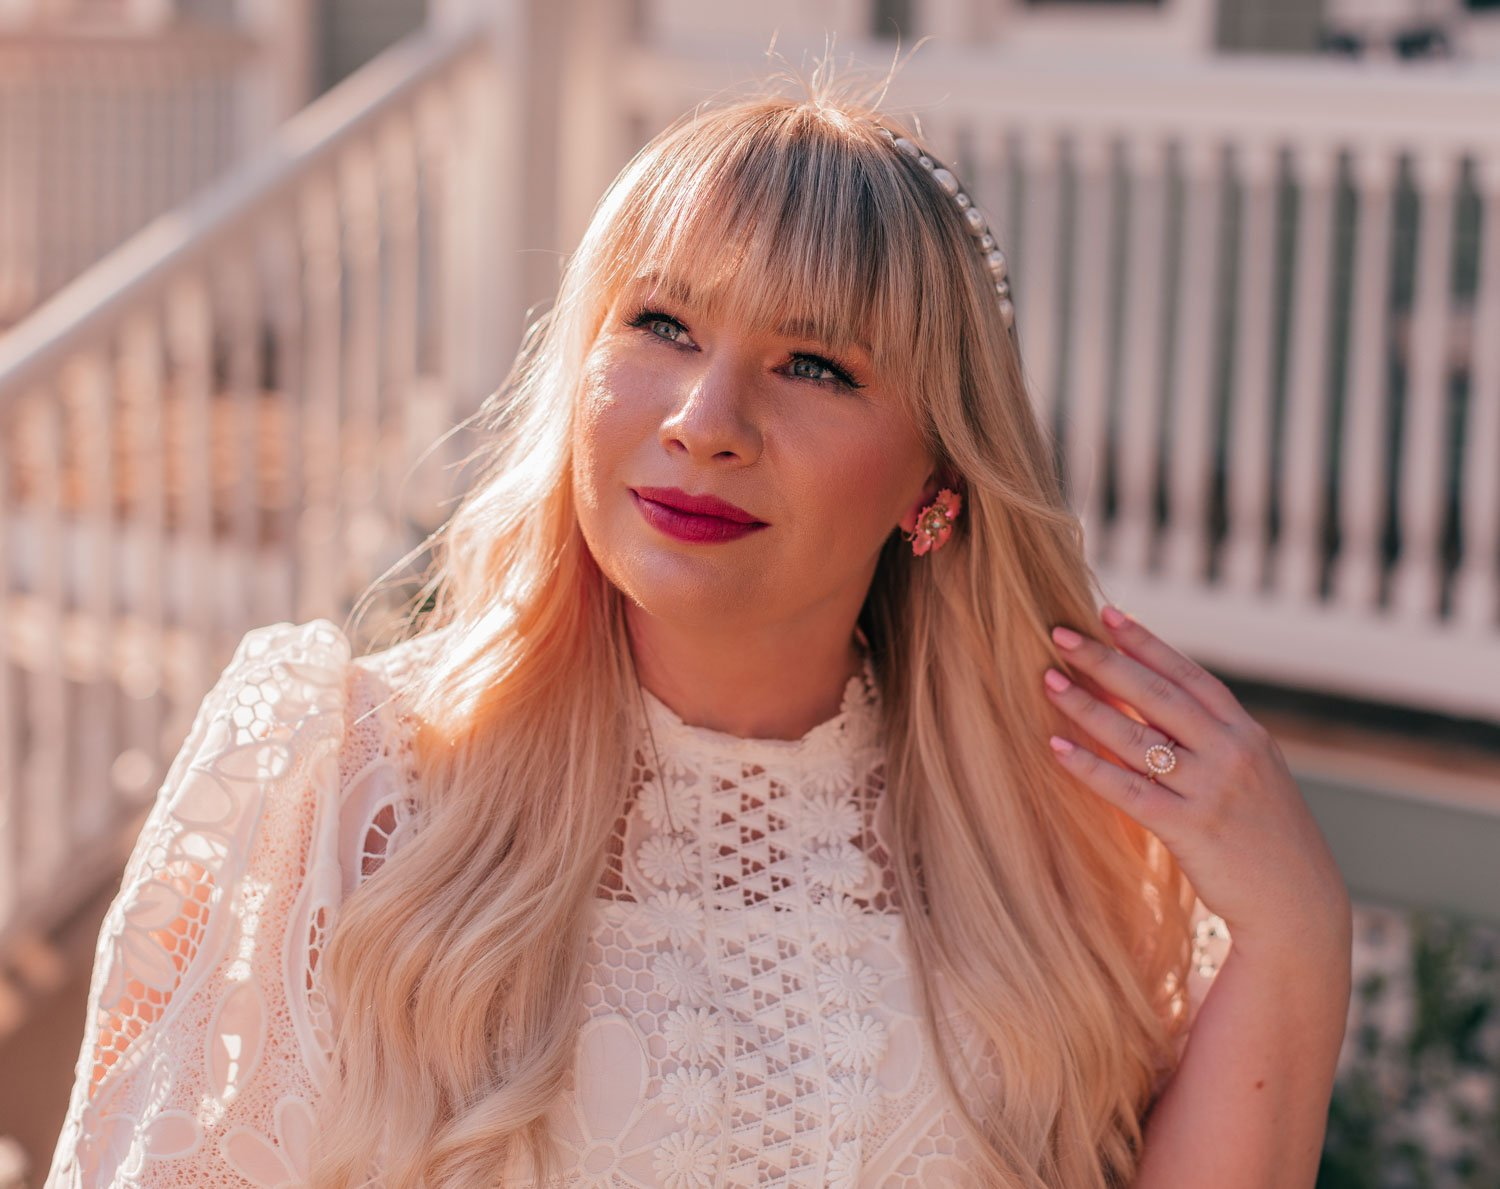 Feminine Fashion Blogger Elizabeth Hugen of Lizzie in Lace shares a feminine floral summer outfit idea including a white lace top, pink floral chicwish skirt and vintage floral earrings